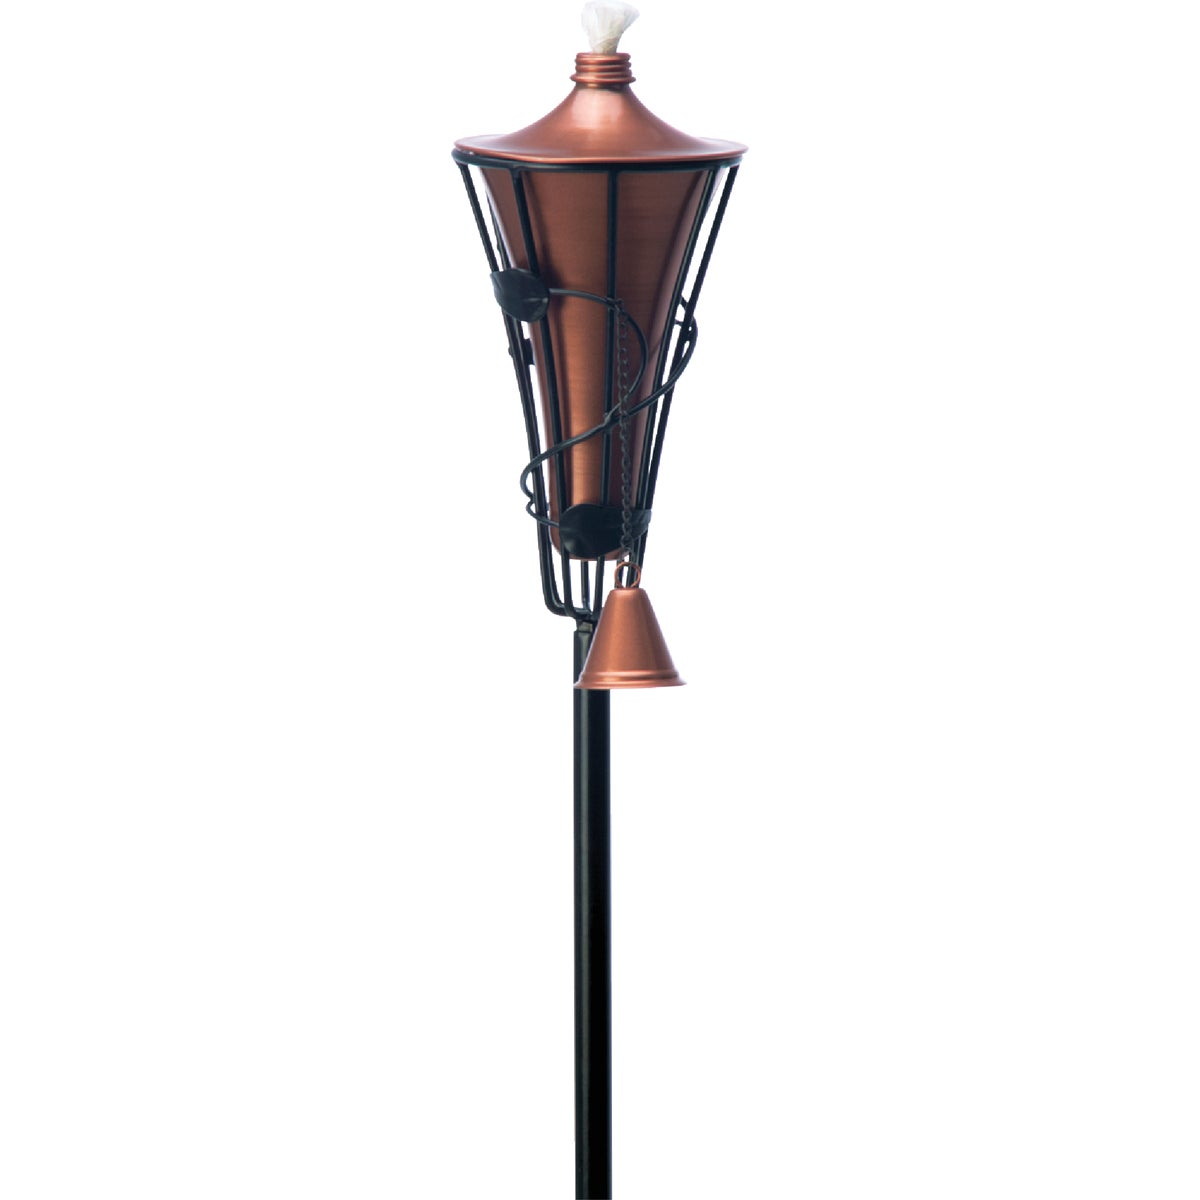 5' COPPER METAL TORCH - M15007 by Do it Best